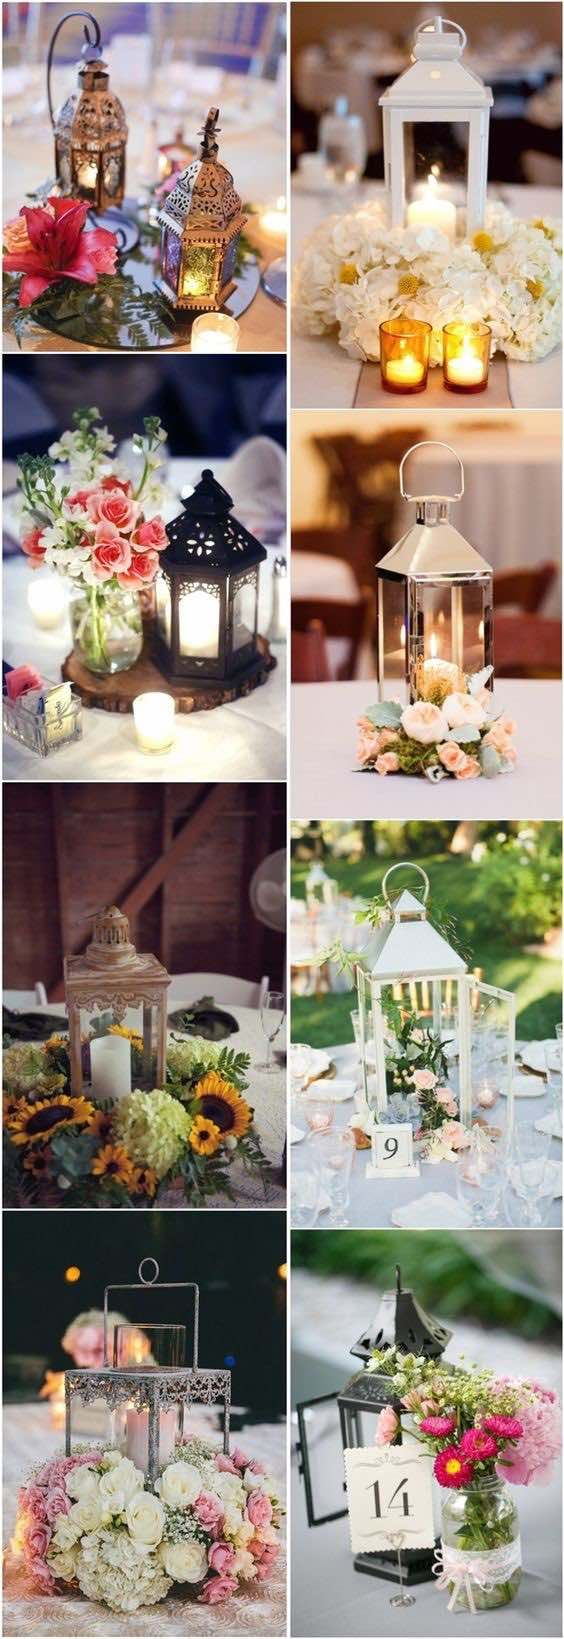 50 ideas de centros de mesa con faroles. Lantern wedding centerpieces.